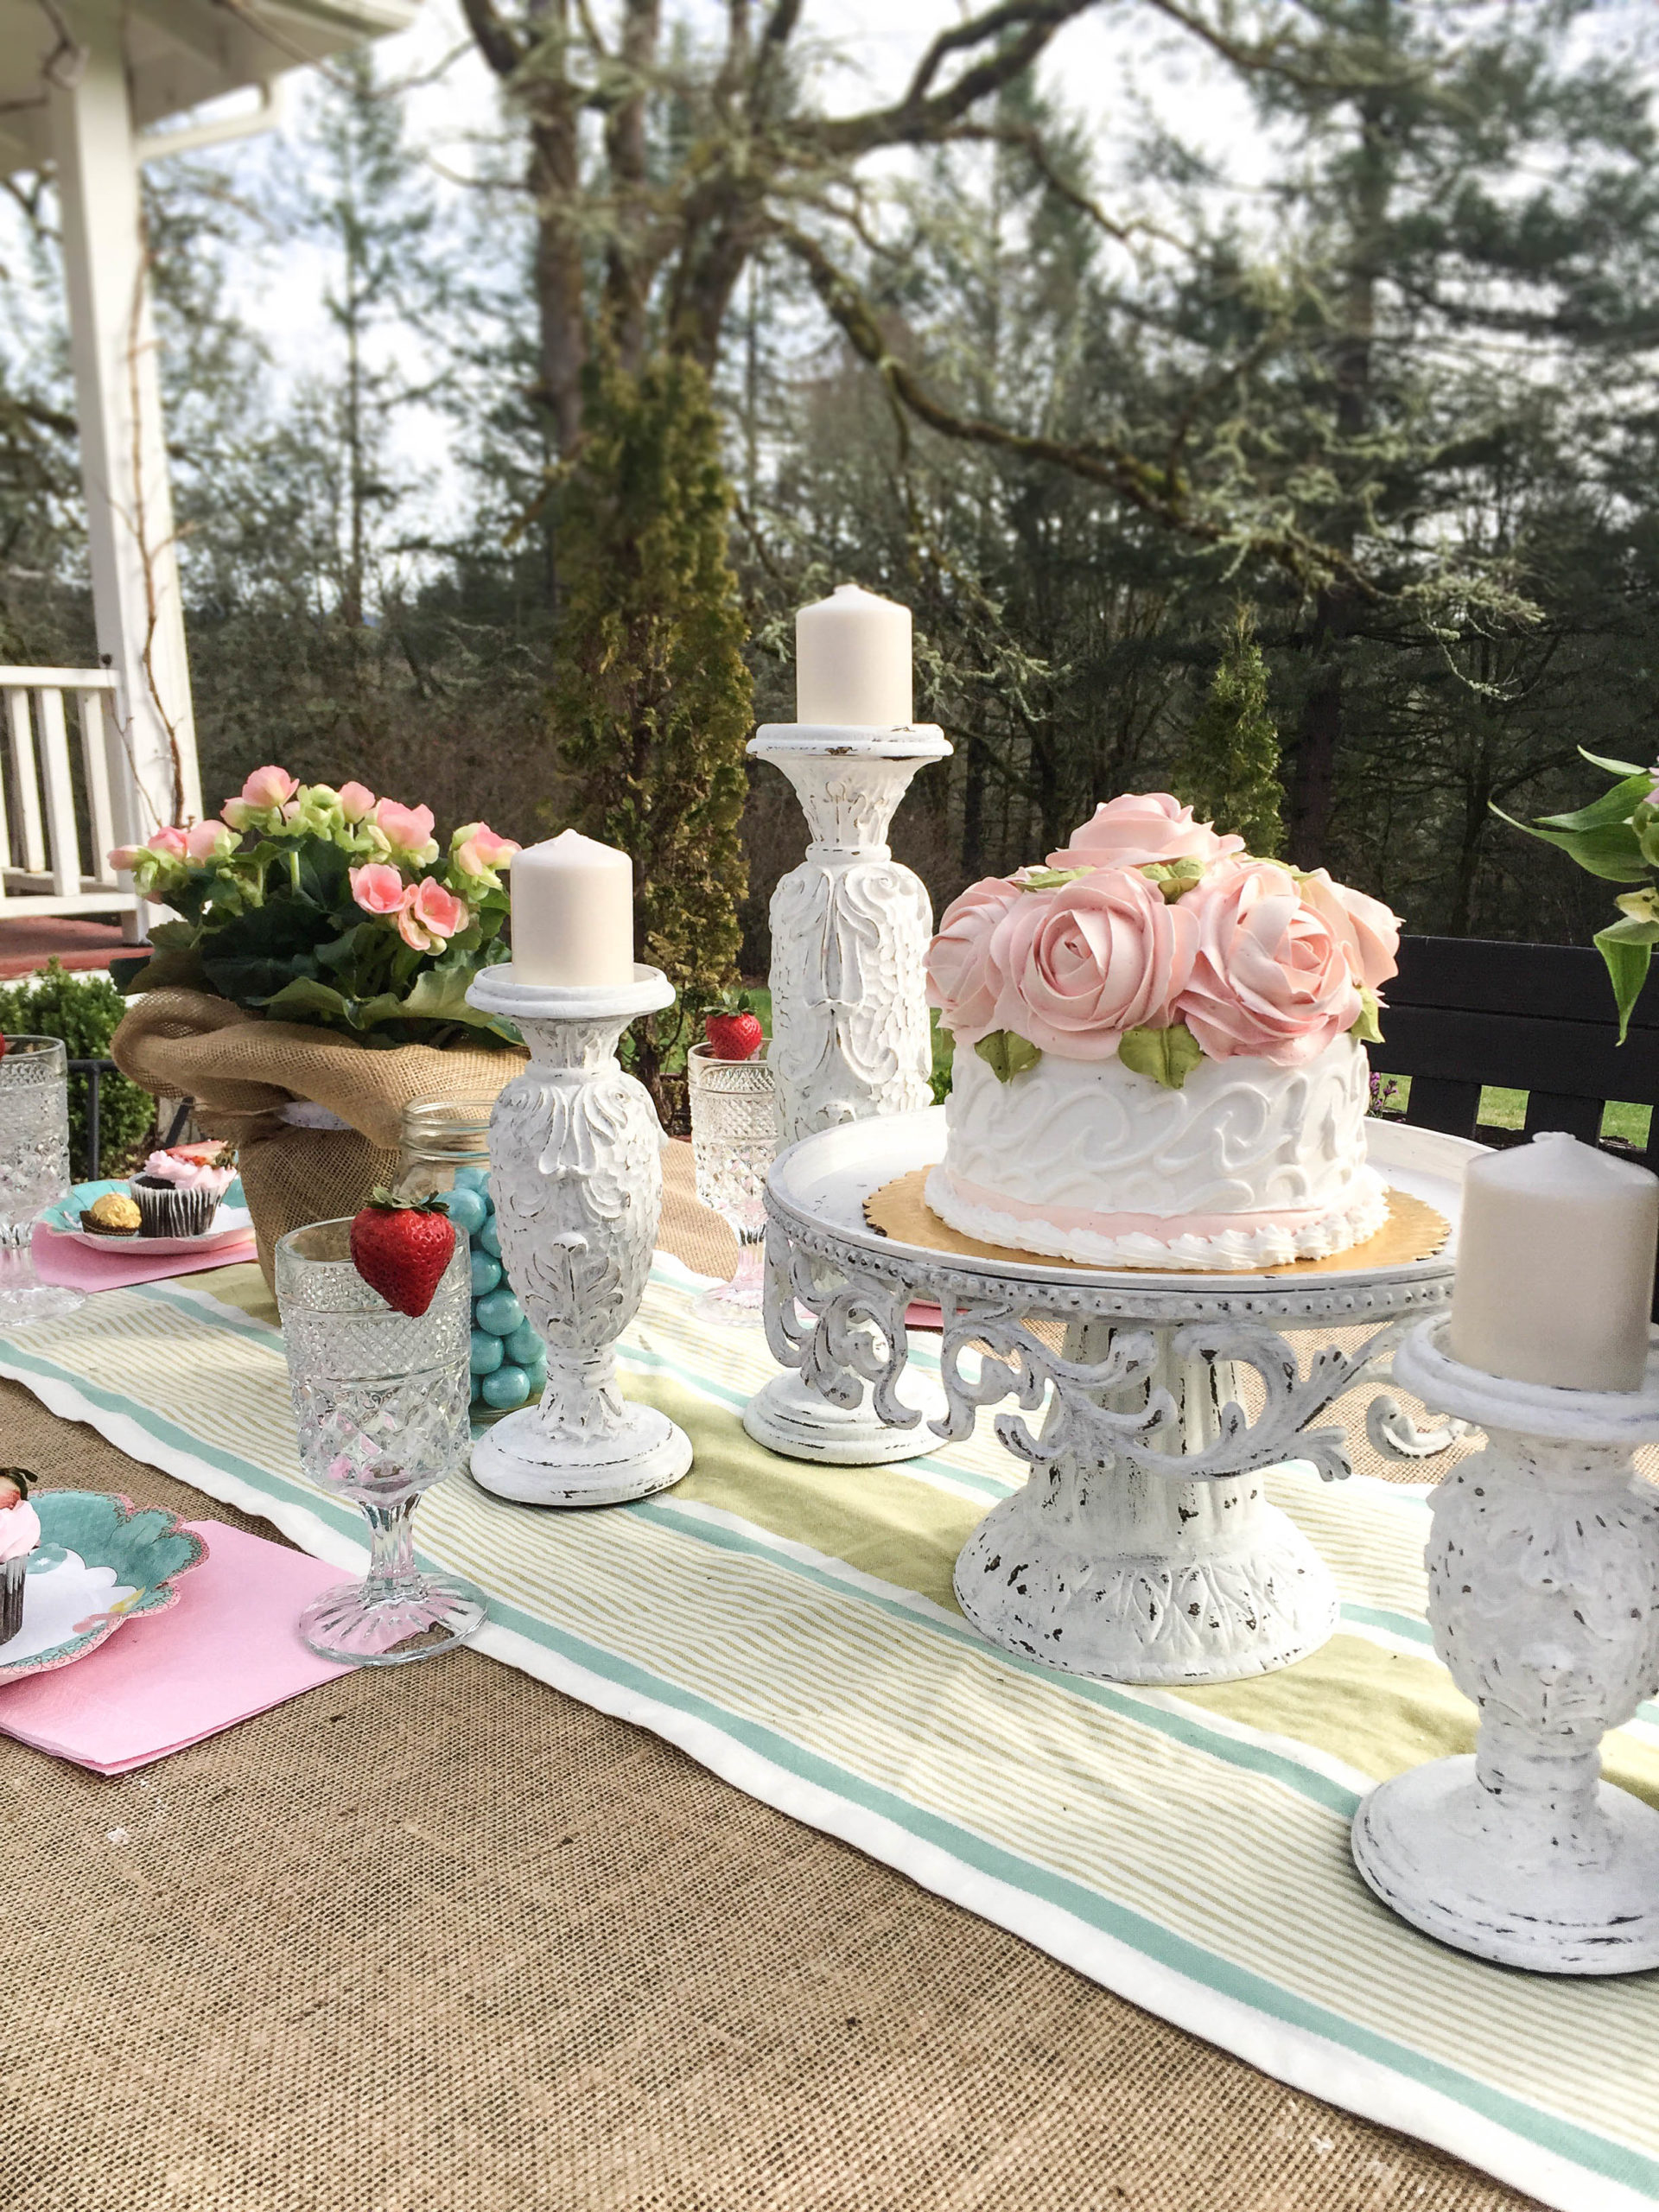 Creative Outdoor Dining Ideas for Your Easter Brunch Farmhouse Style